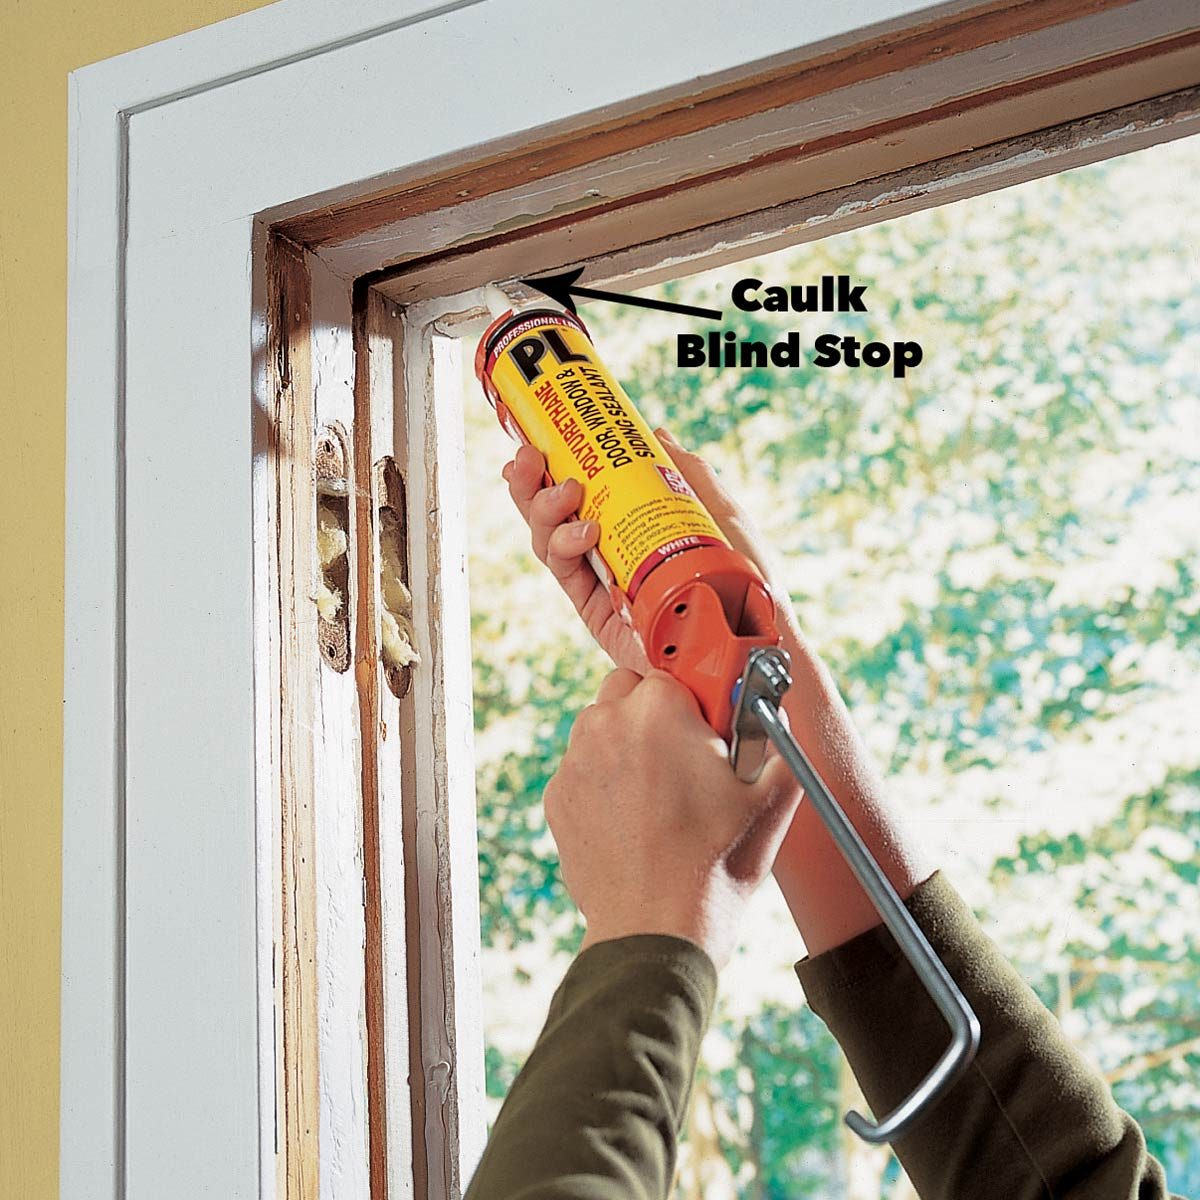 caulk window replacement replacing windows in old house